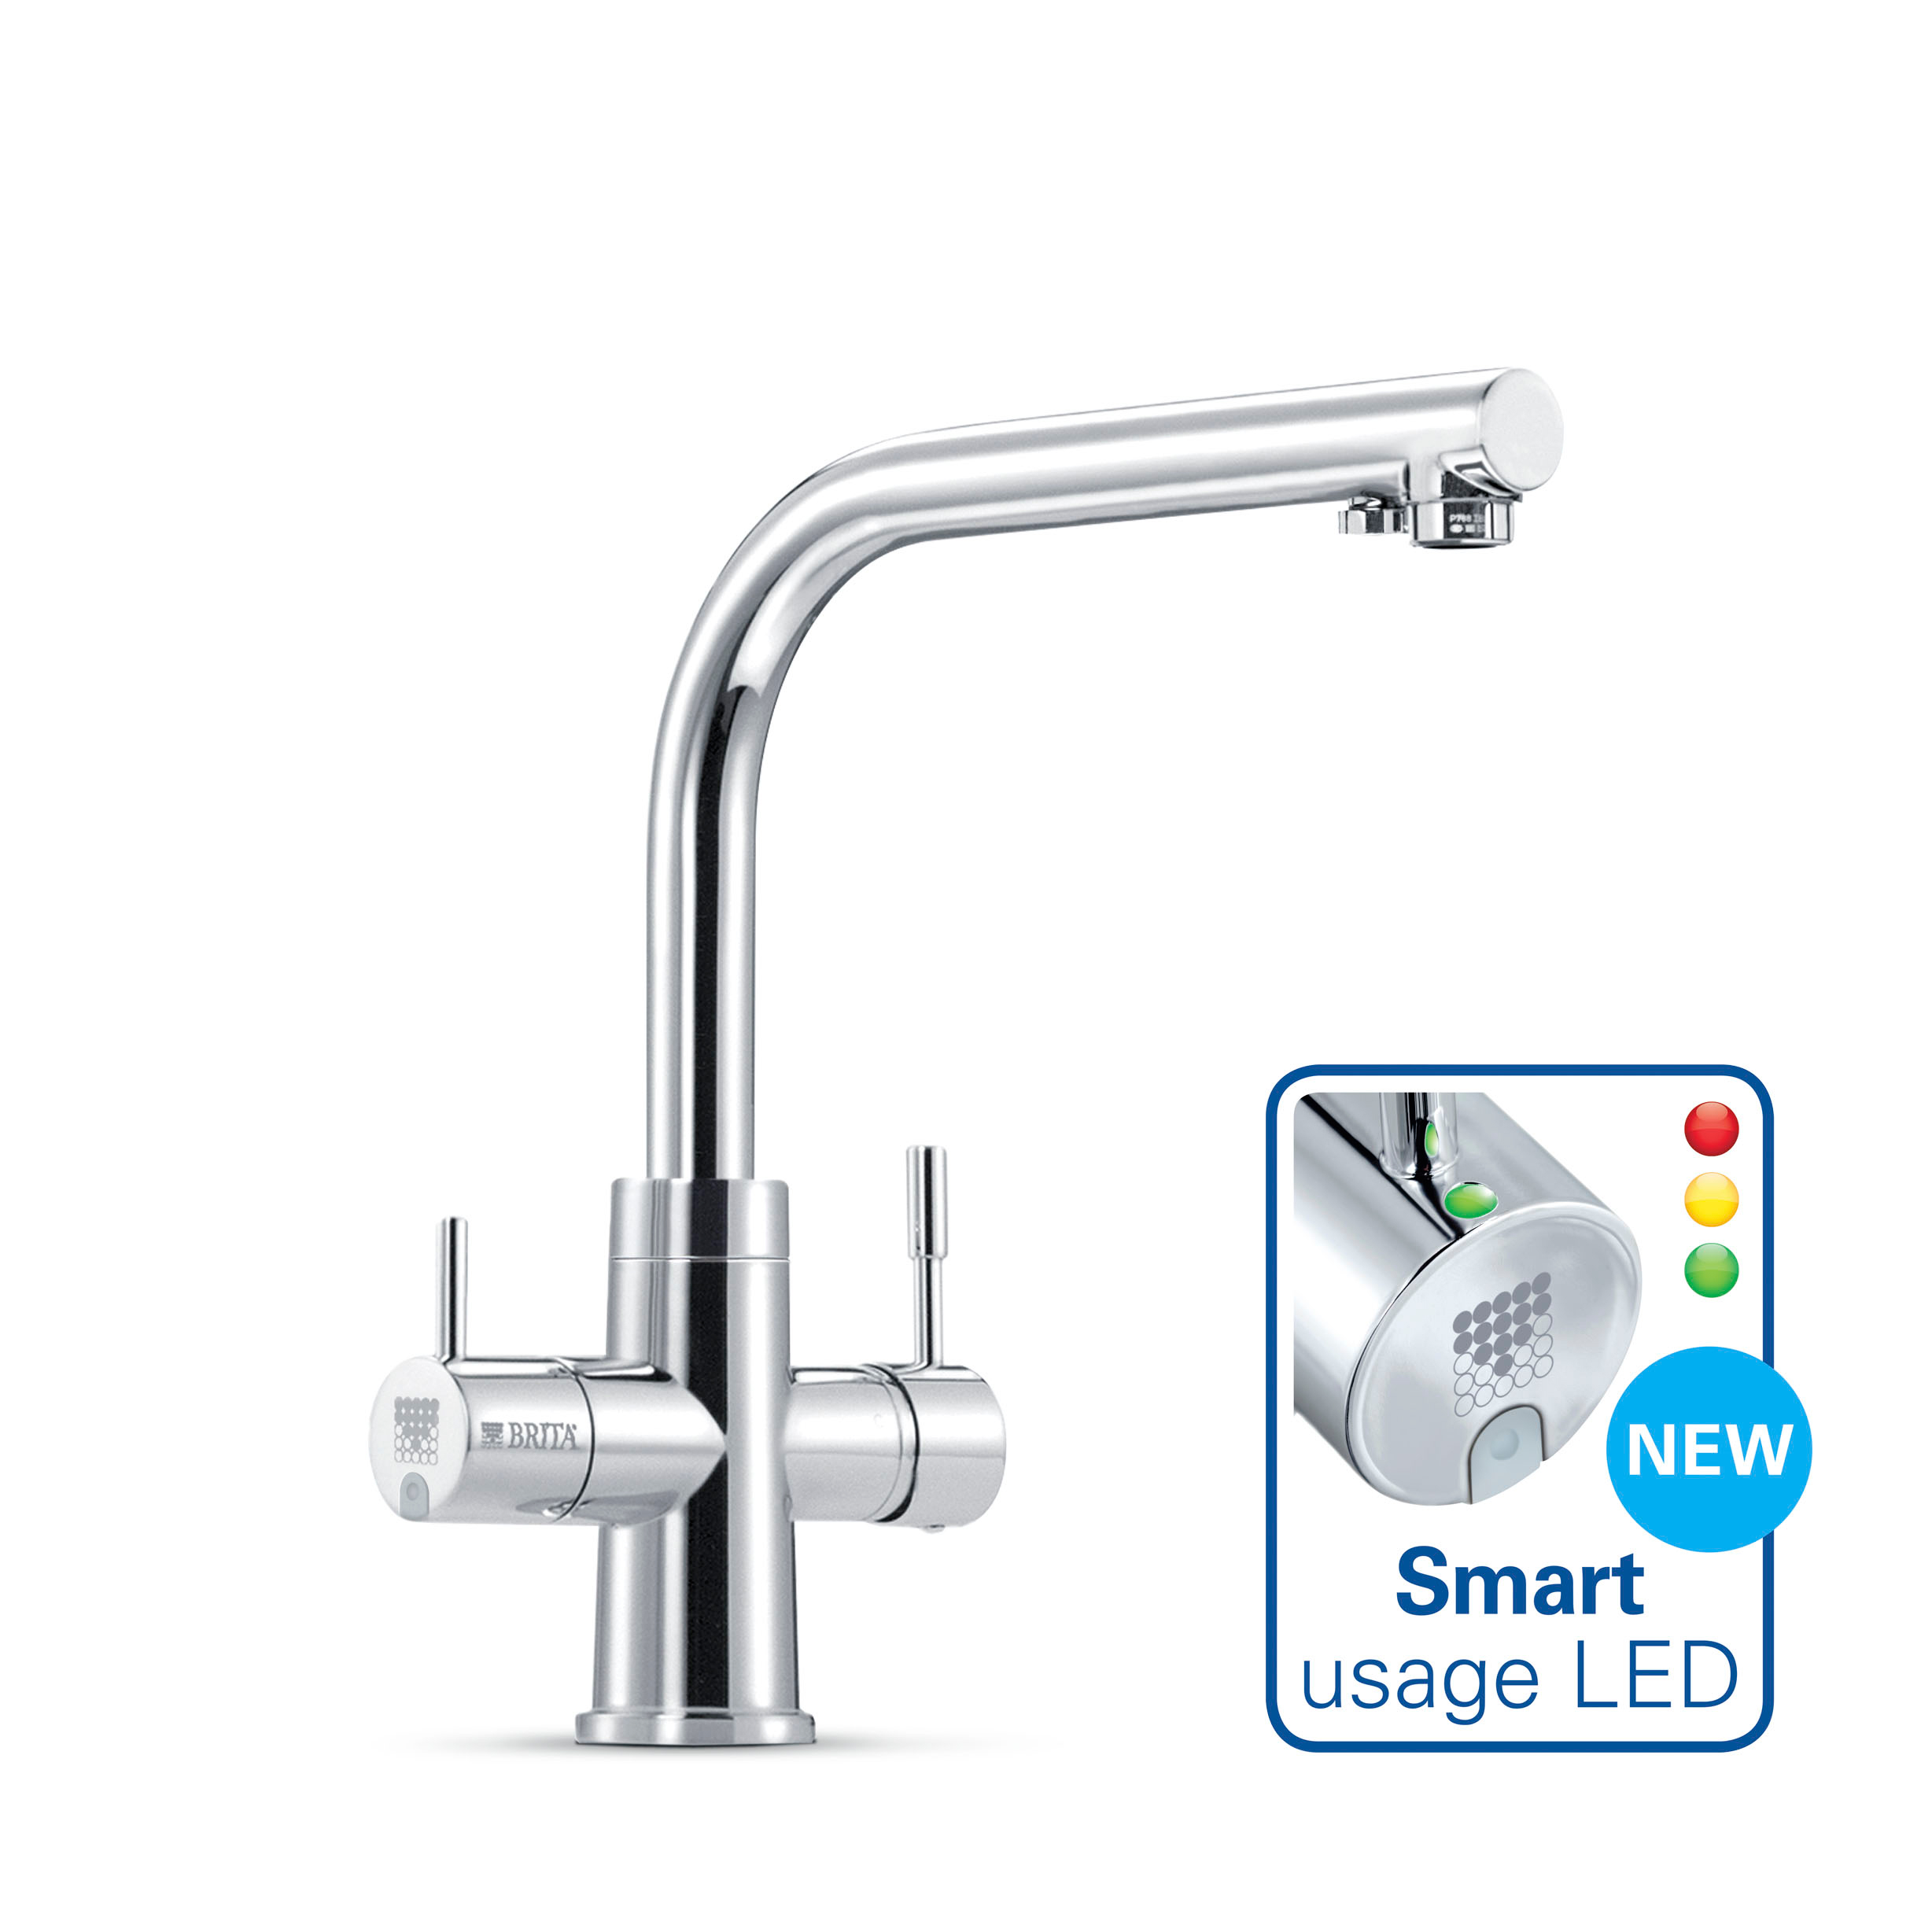 eco certification kona temperature body main faucets at water best of nsf look chrome finish carbon effectiveness faucet range filter and fibre black white